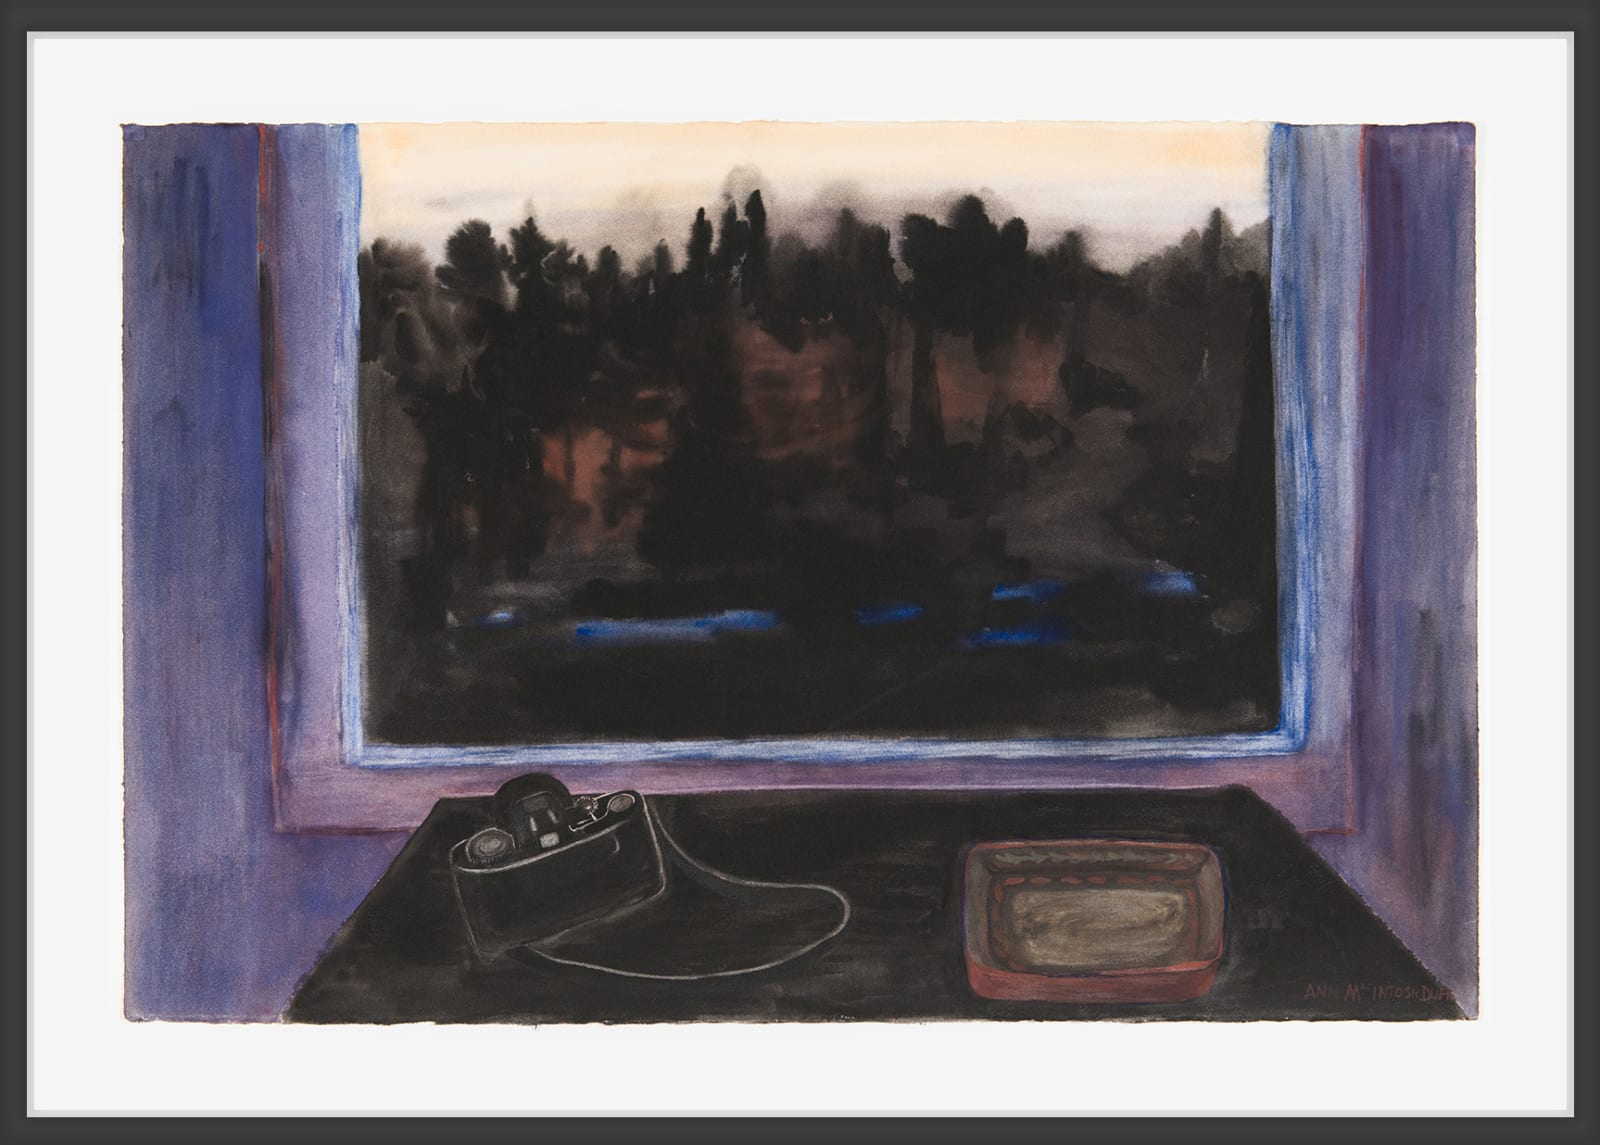 Ann MacIntosh Duff, Late Evening View (Capture), c. 1995